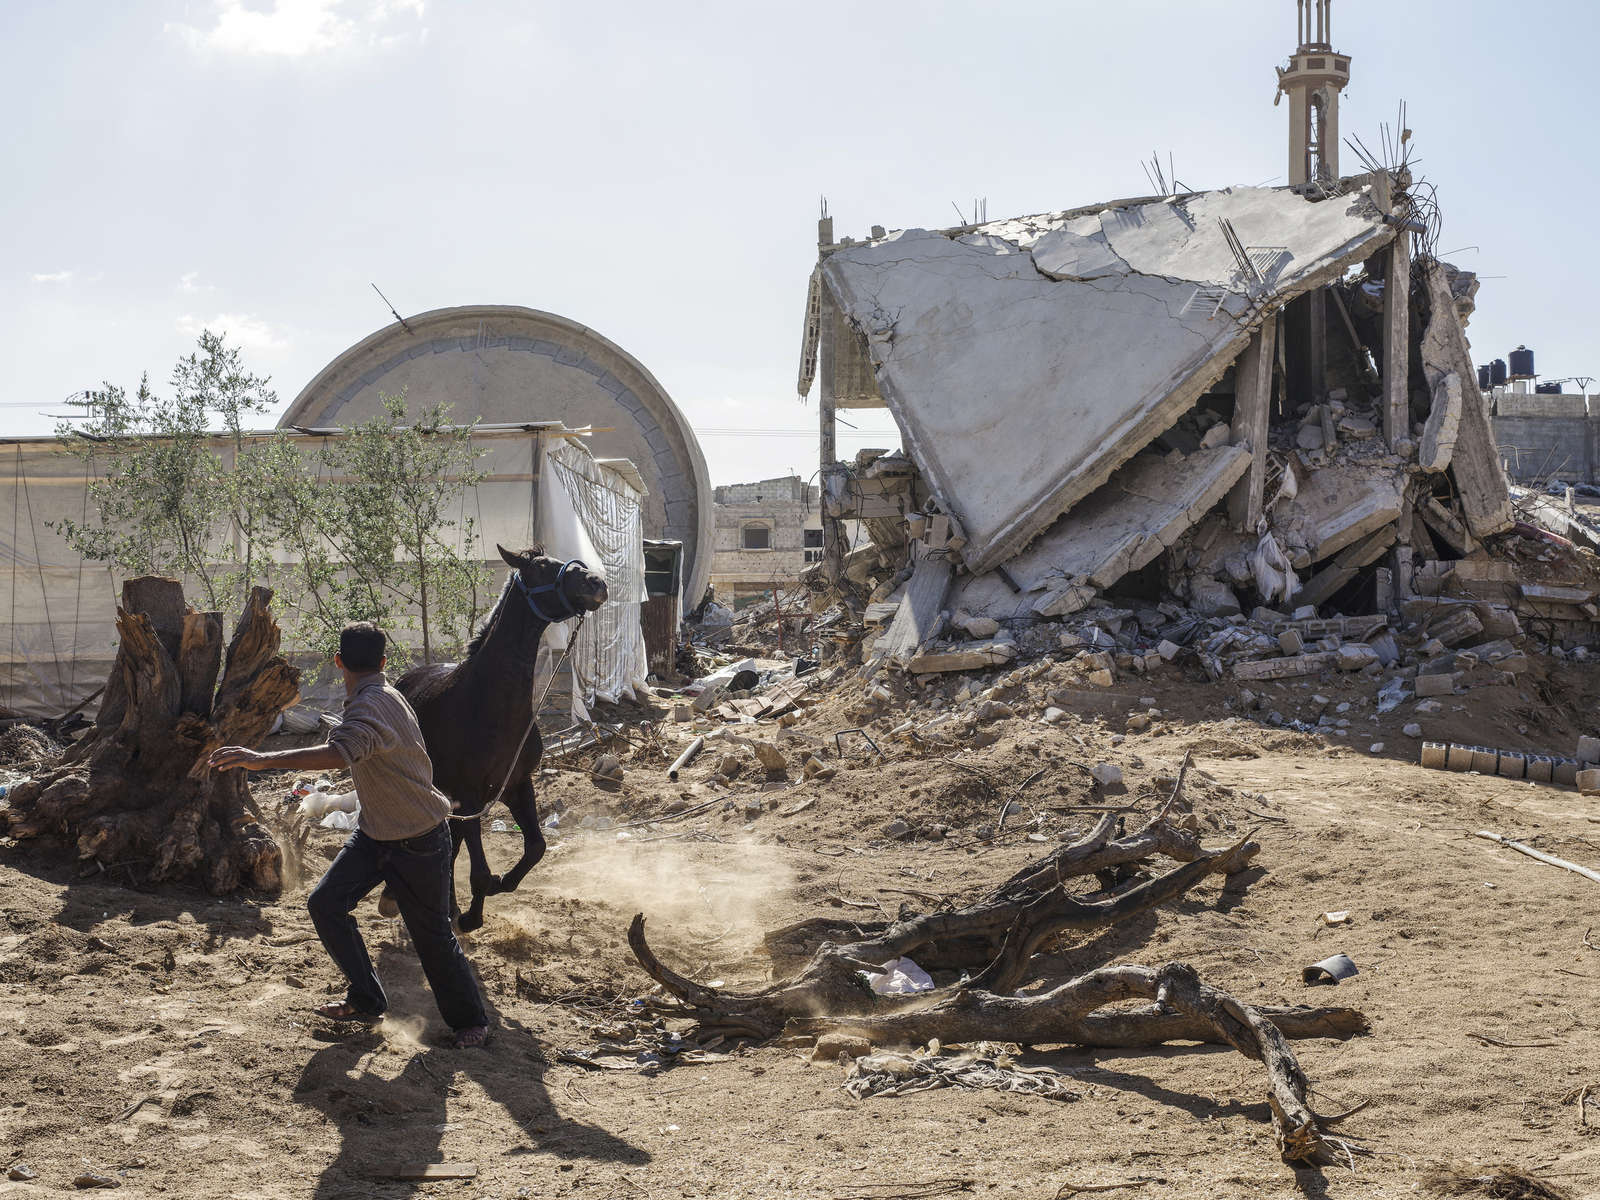 2014.  Gaza.  Palestine. A runaway horse by a destroyed mosque in southern Gaza.  Operation Protective Edge lasted from 8 July 2014 – 26 August 2014, killing 2,189 Palestinians of which 1,486 are believed to be civilians. 66 Israeli soldiers and 6 civilians were killed.  It's estimated that 4,564 rockets were fired at Israel by Palestinian militants.